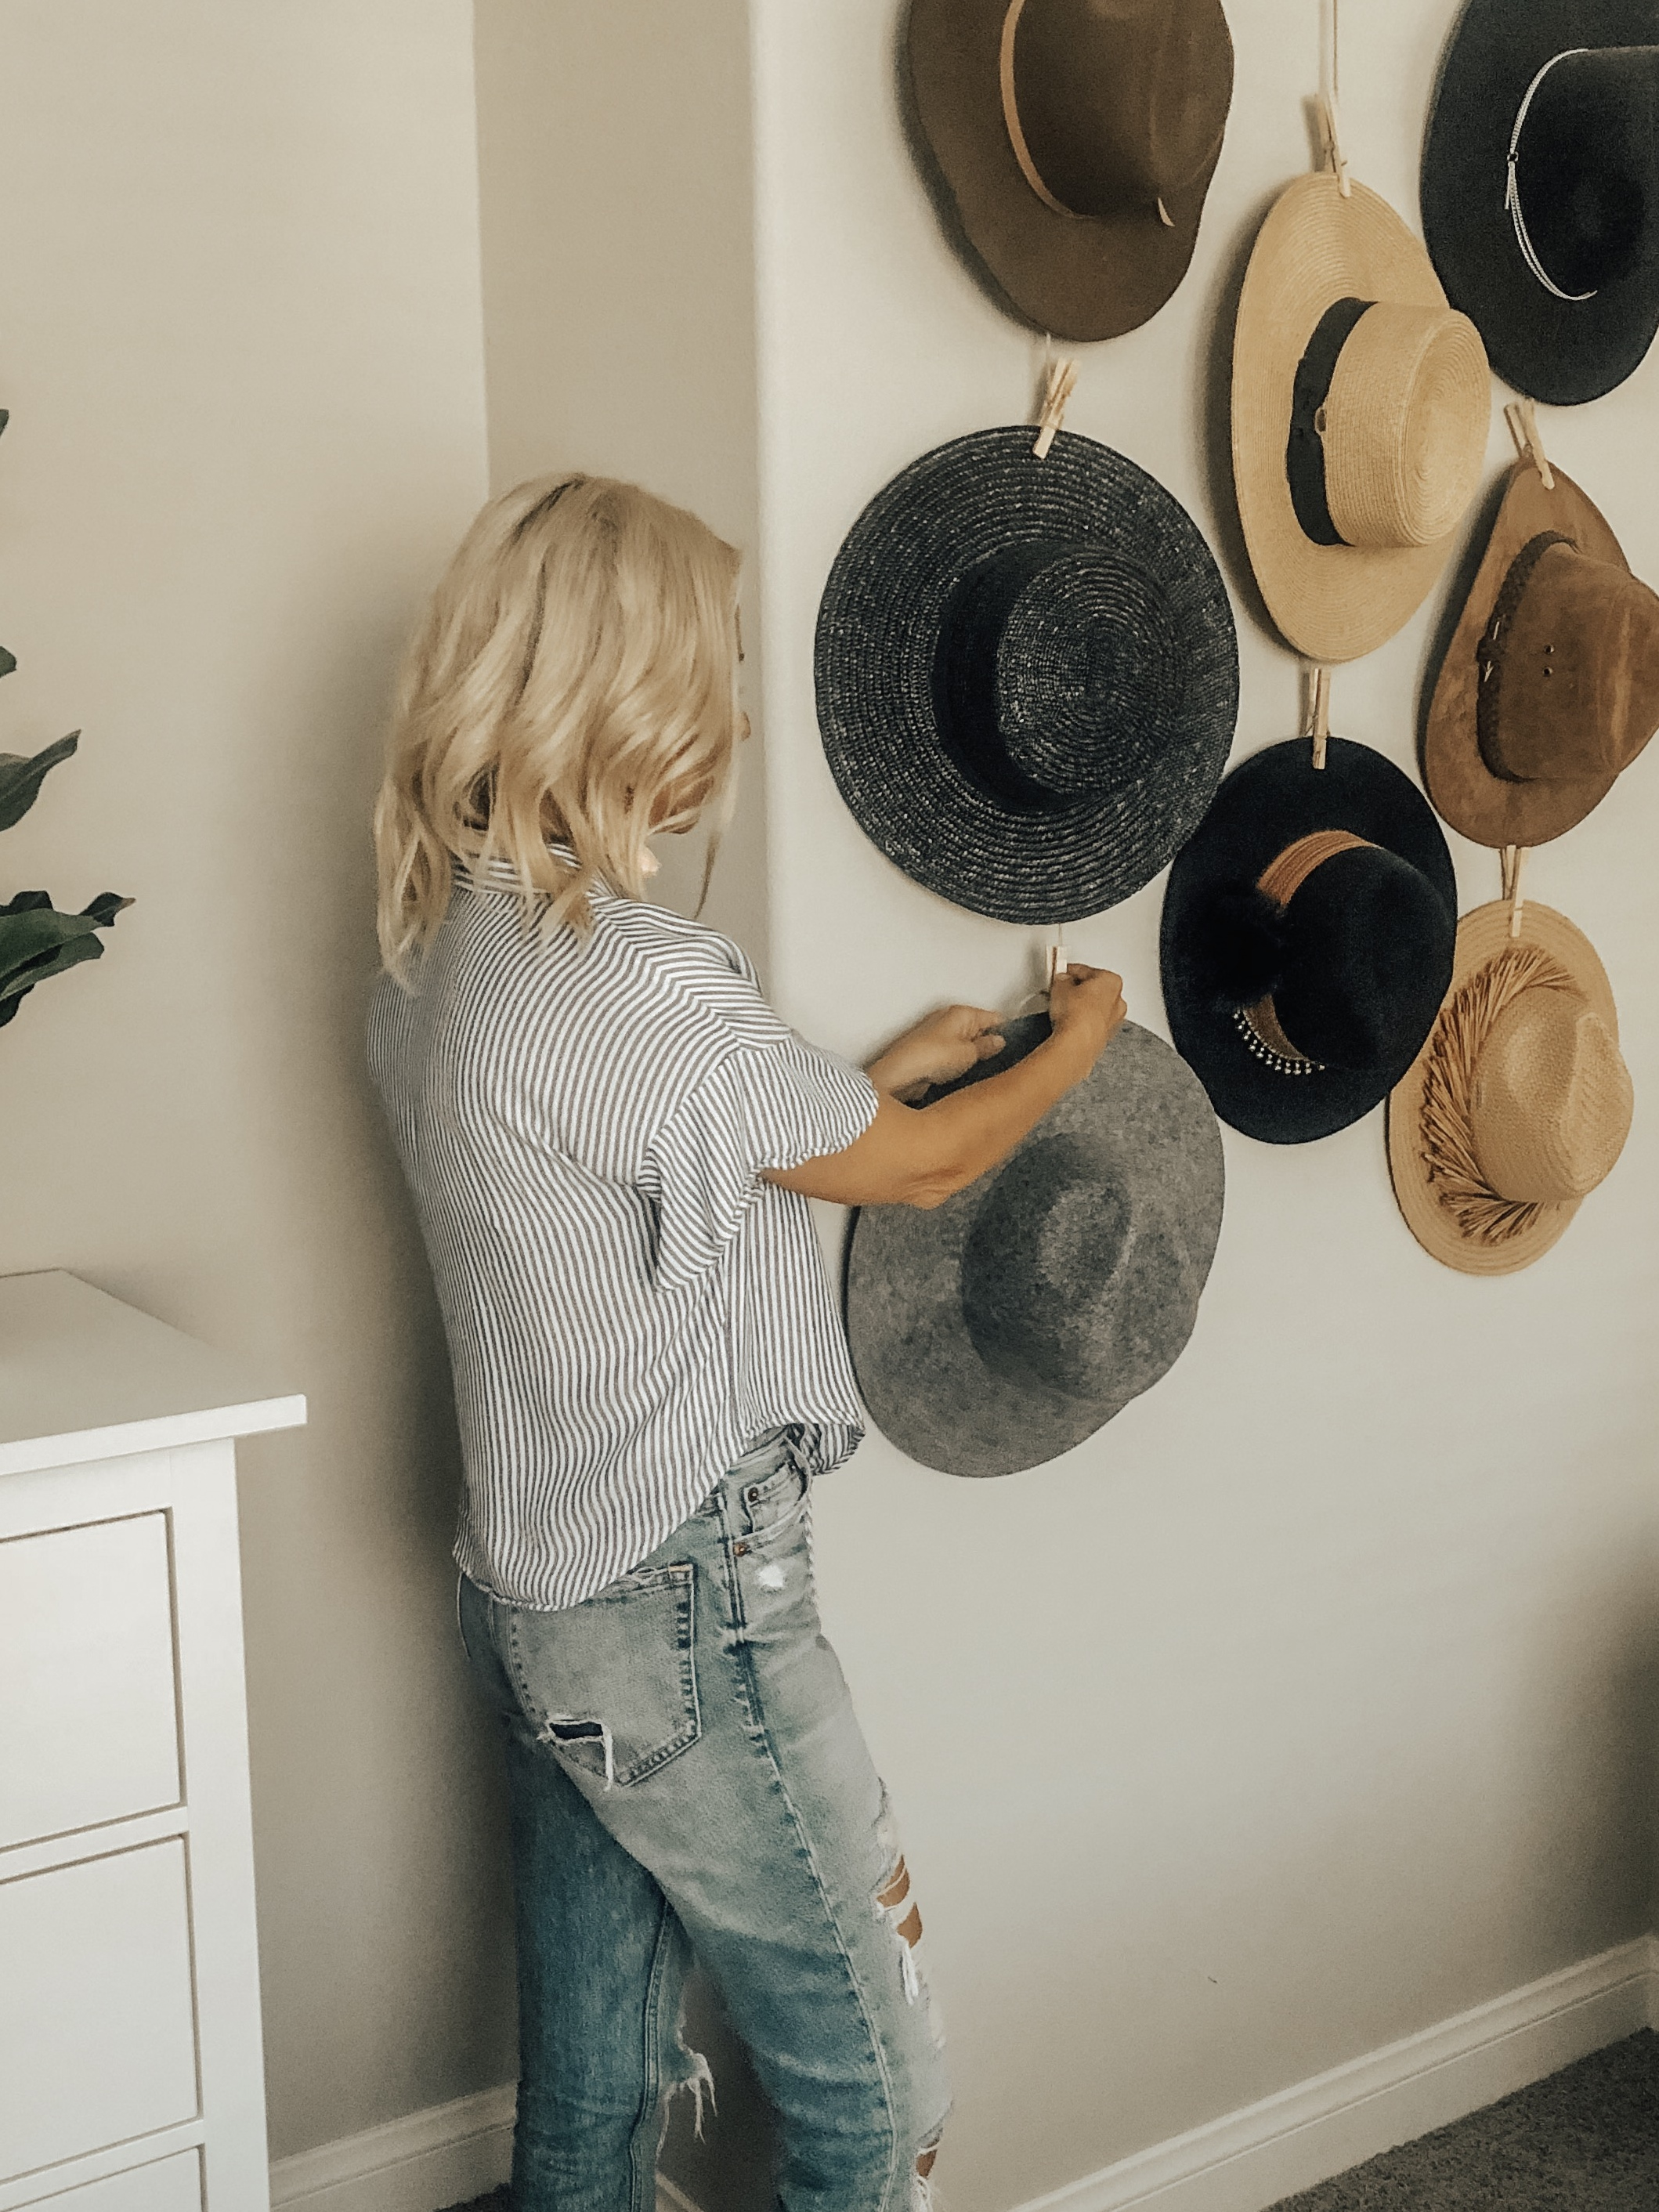 DIY HAT WALL TUTORIAL= Jaclyn De Leon Style + Looking for an affordable way to organize and display your hats? I've got the easiest DIY for under $20 and with only 4 supplies. Turn your hats into a boho chic home decor piece.